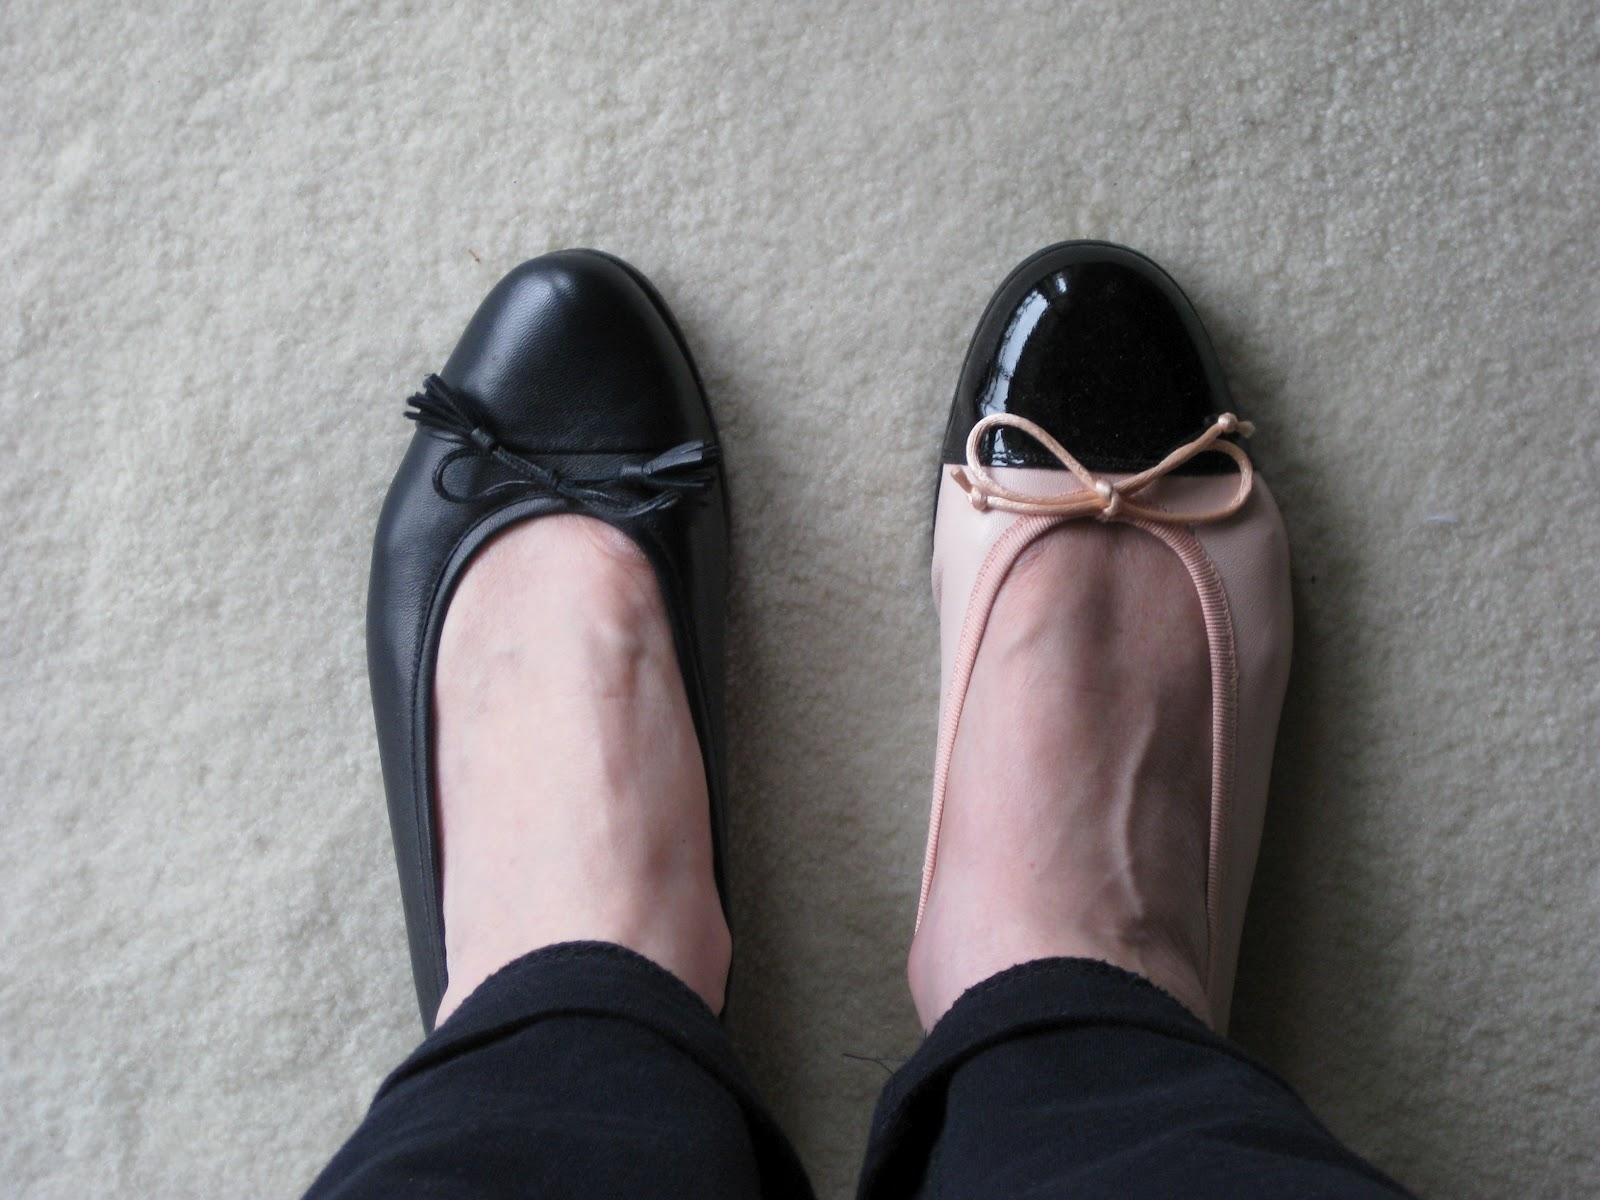 b551fd0cc95e ... makes the foot look larger - again its that old rule that light colours  reflect light and appear larger. In contrast the foot in the darker shoe  looks ...